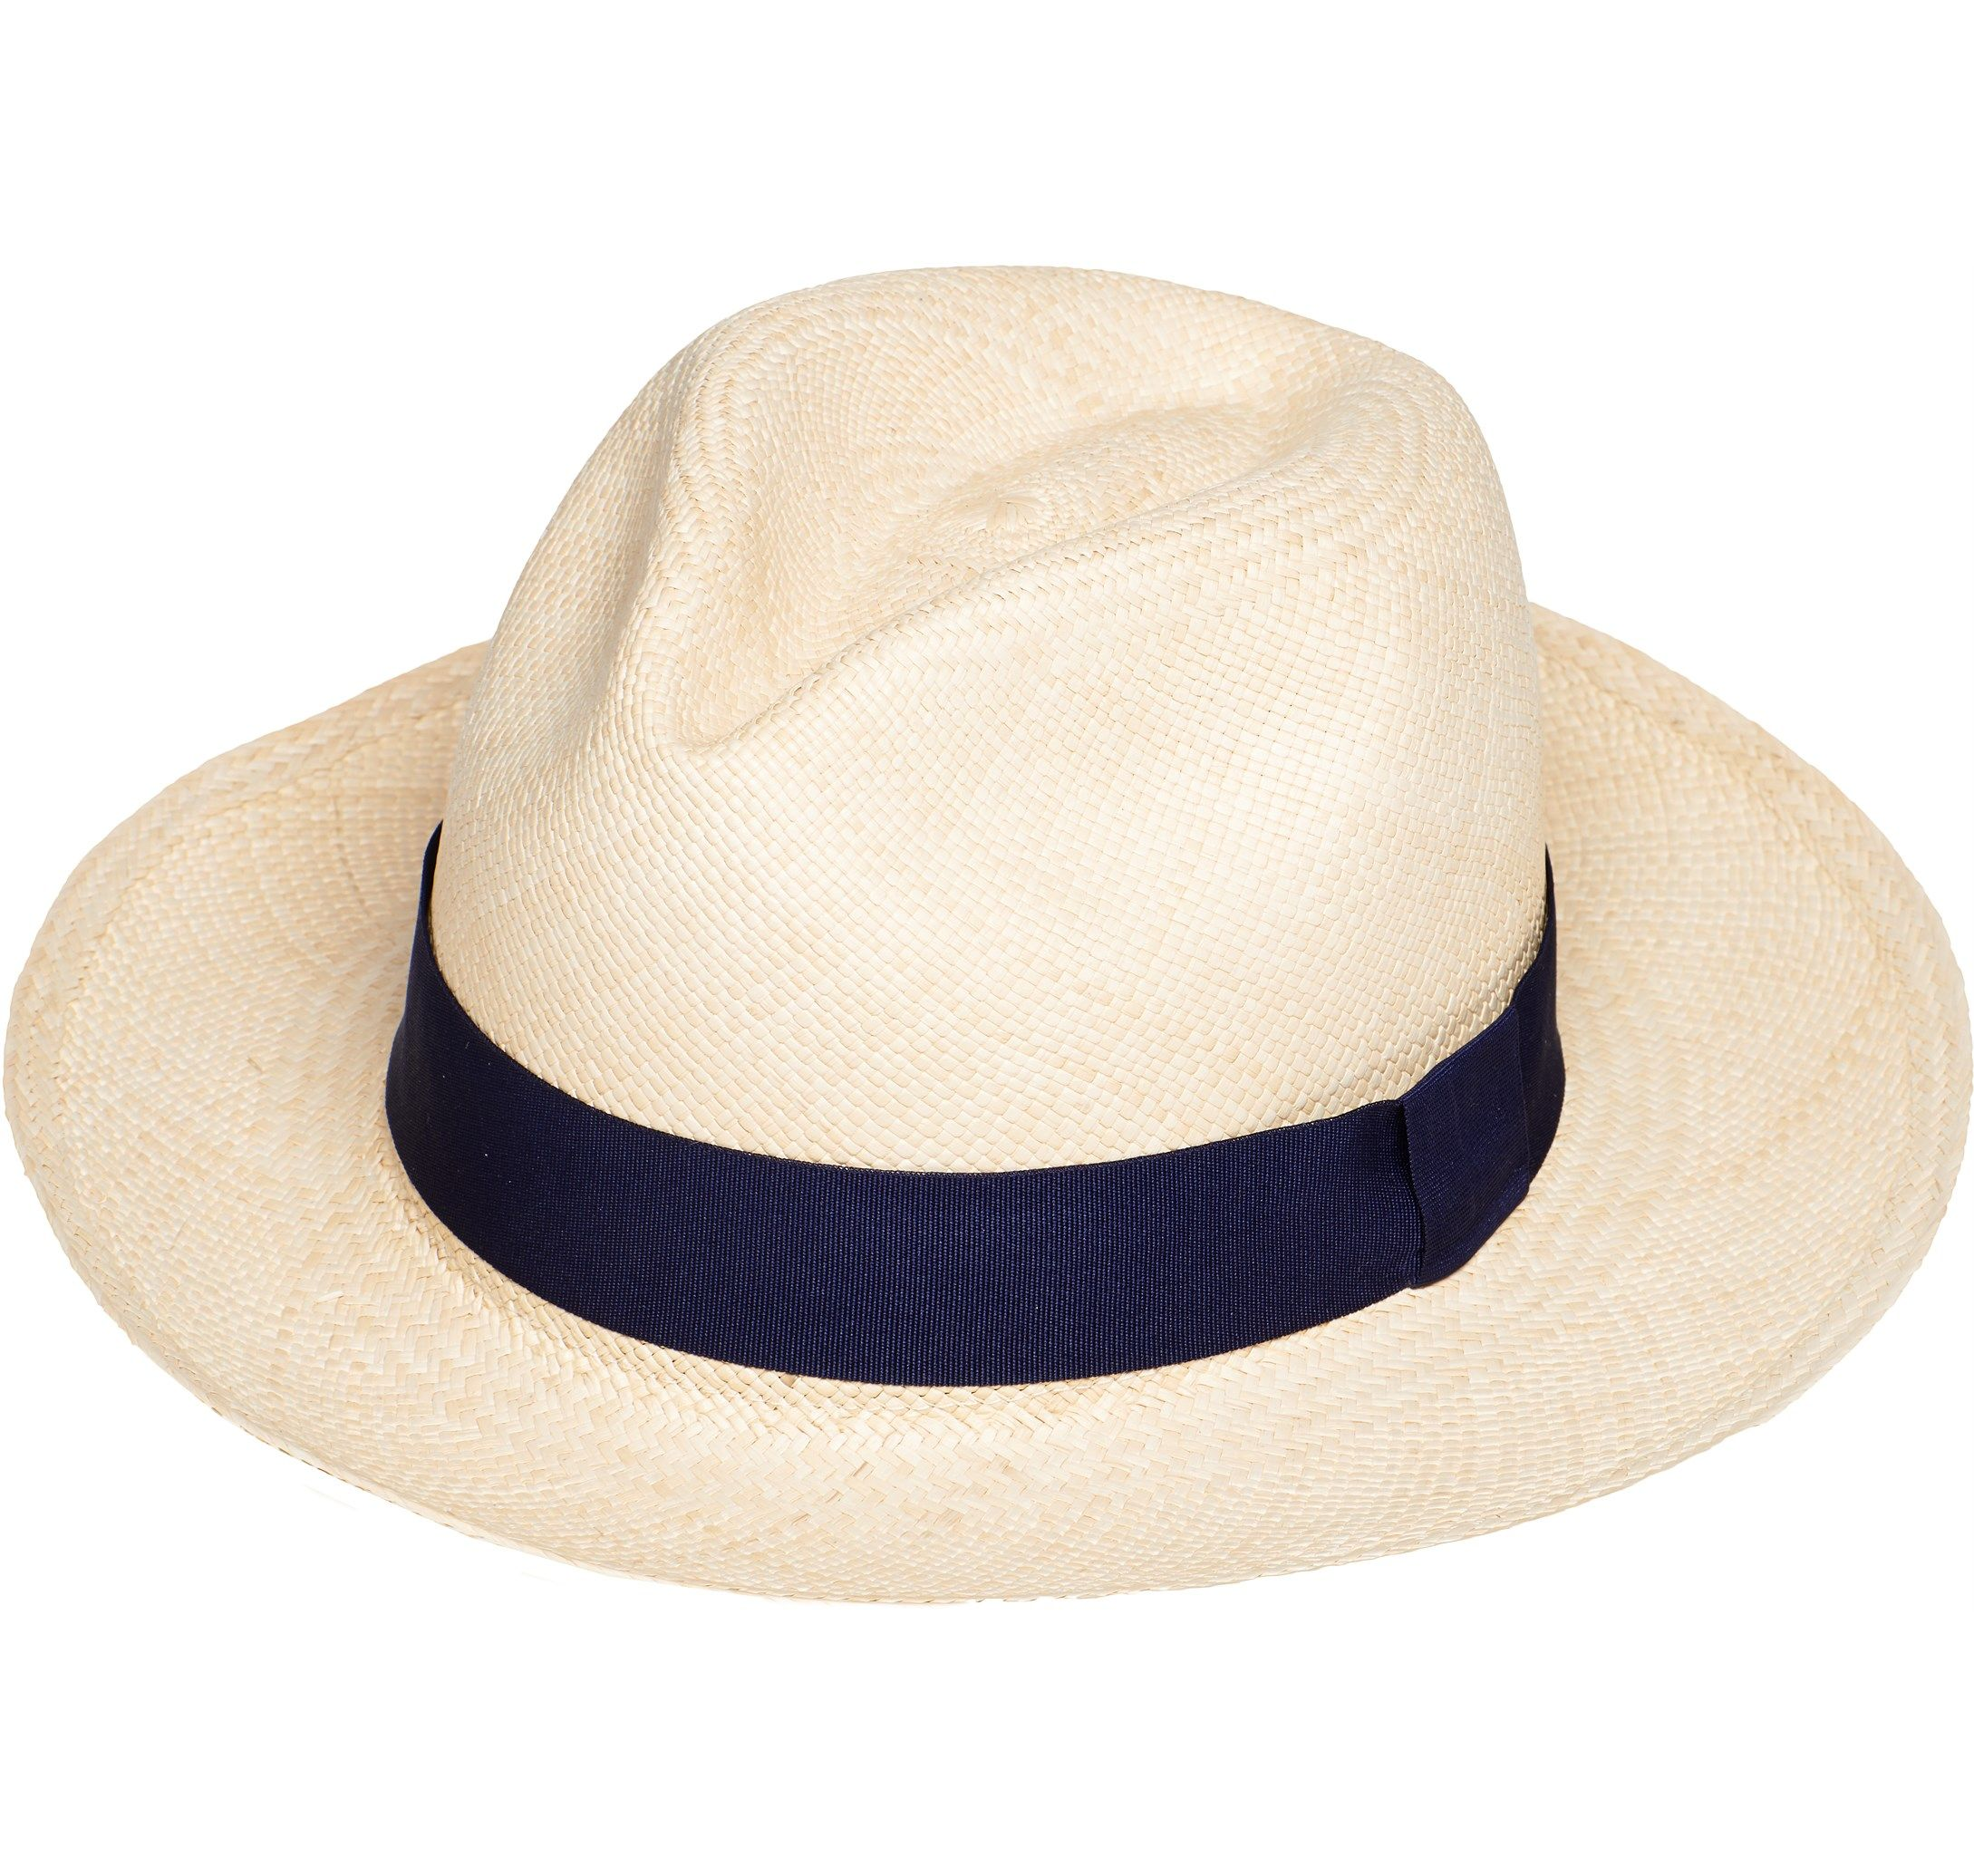 889ff201f60 20+ Delmonico Hats Men Pictures and Ideas on Meta Networks